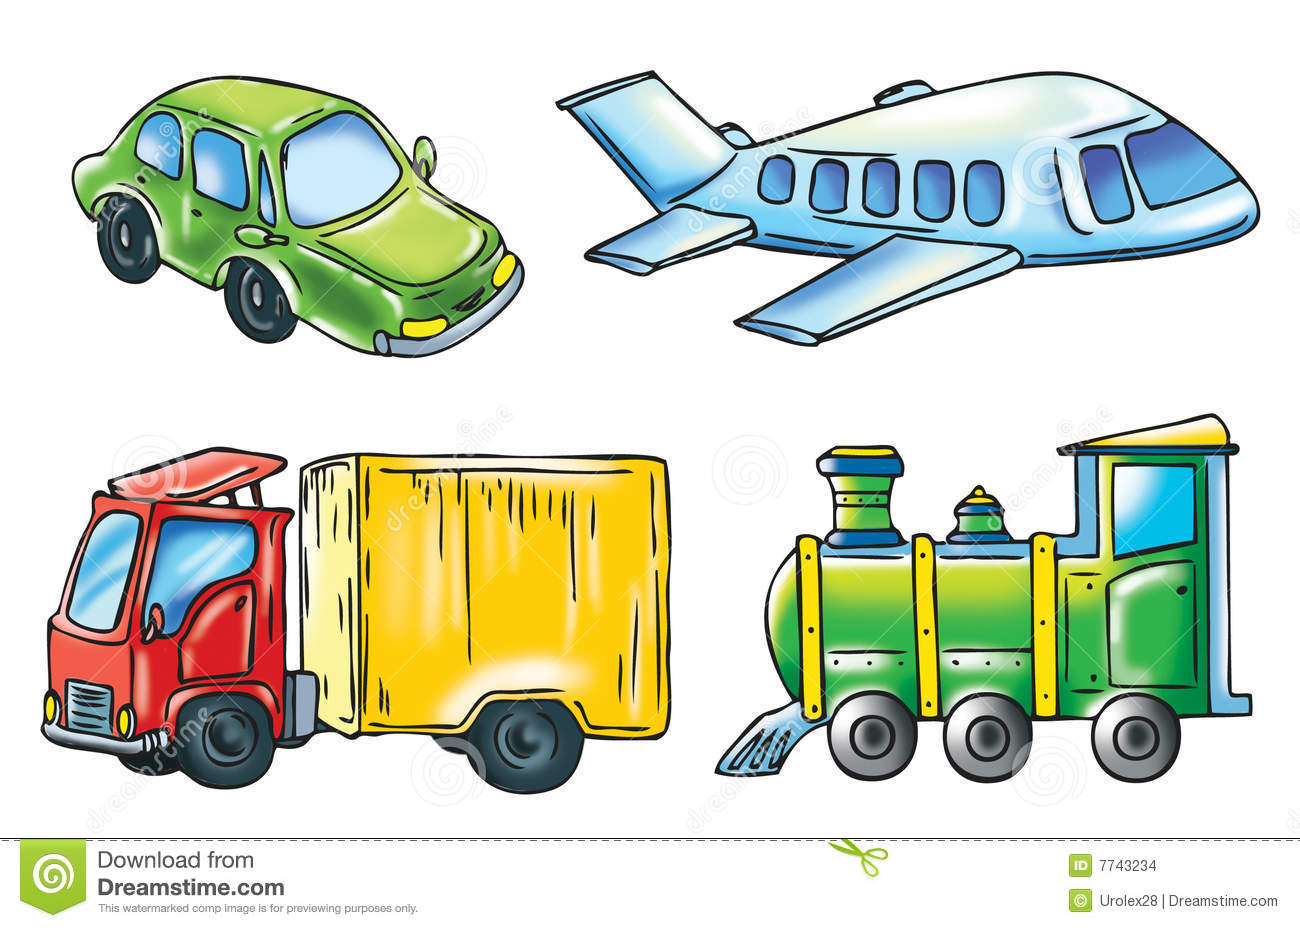 Un dessin anim de transport illustration stock illustration du transport train 7743234 - Dessin de transport ...